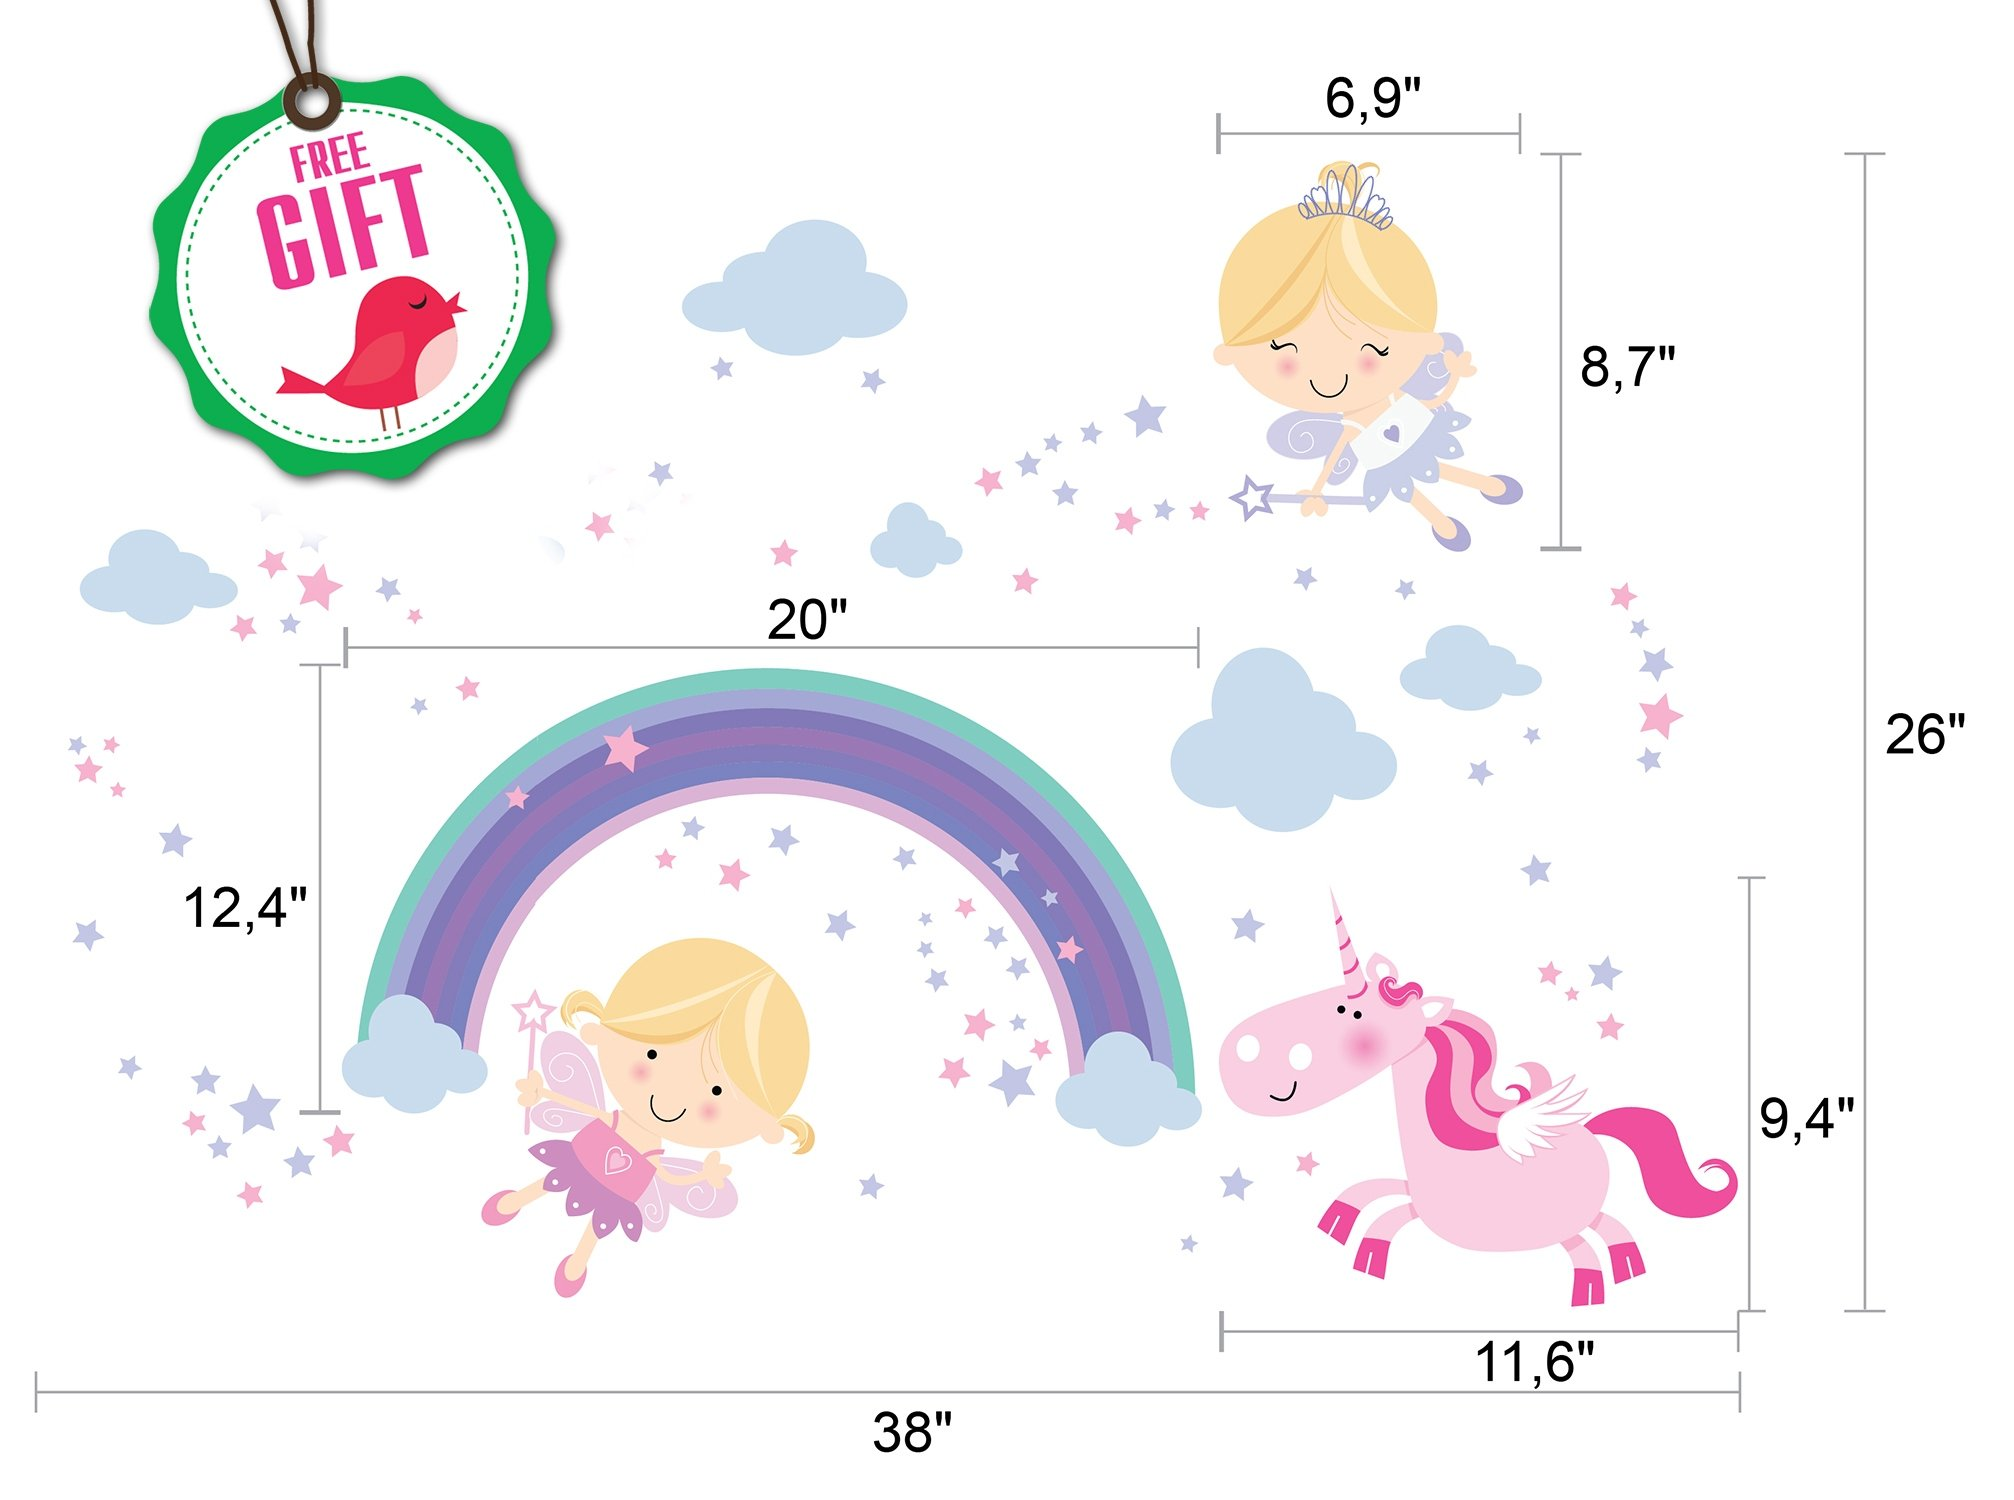 Unicorn Baby Girl Room Décor - Fairy Wall Stickers Childrens for Bedroom, Nursery, Playroom - with Free Gift! 4